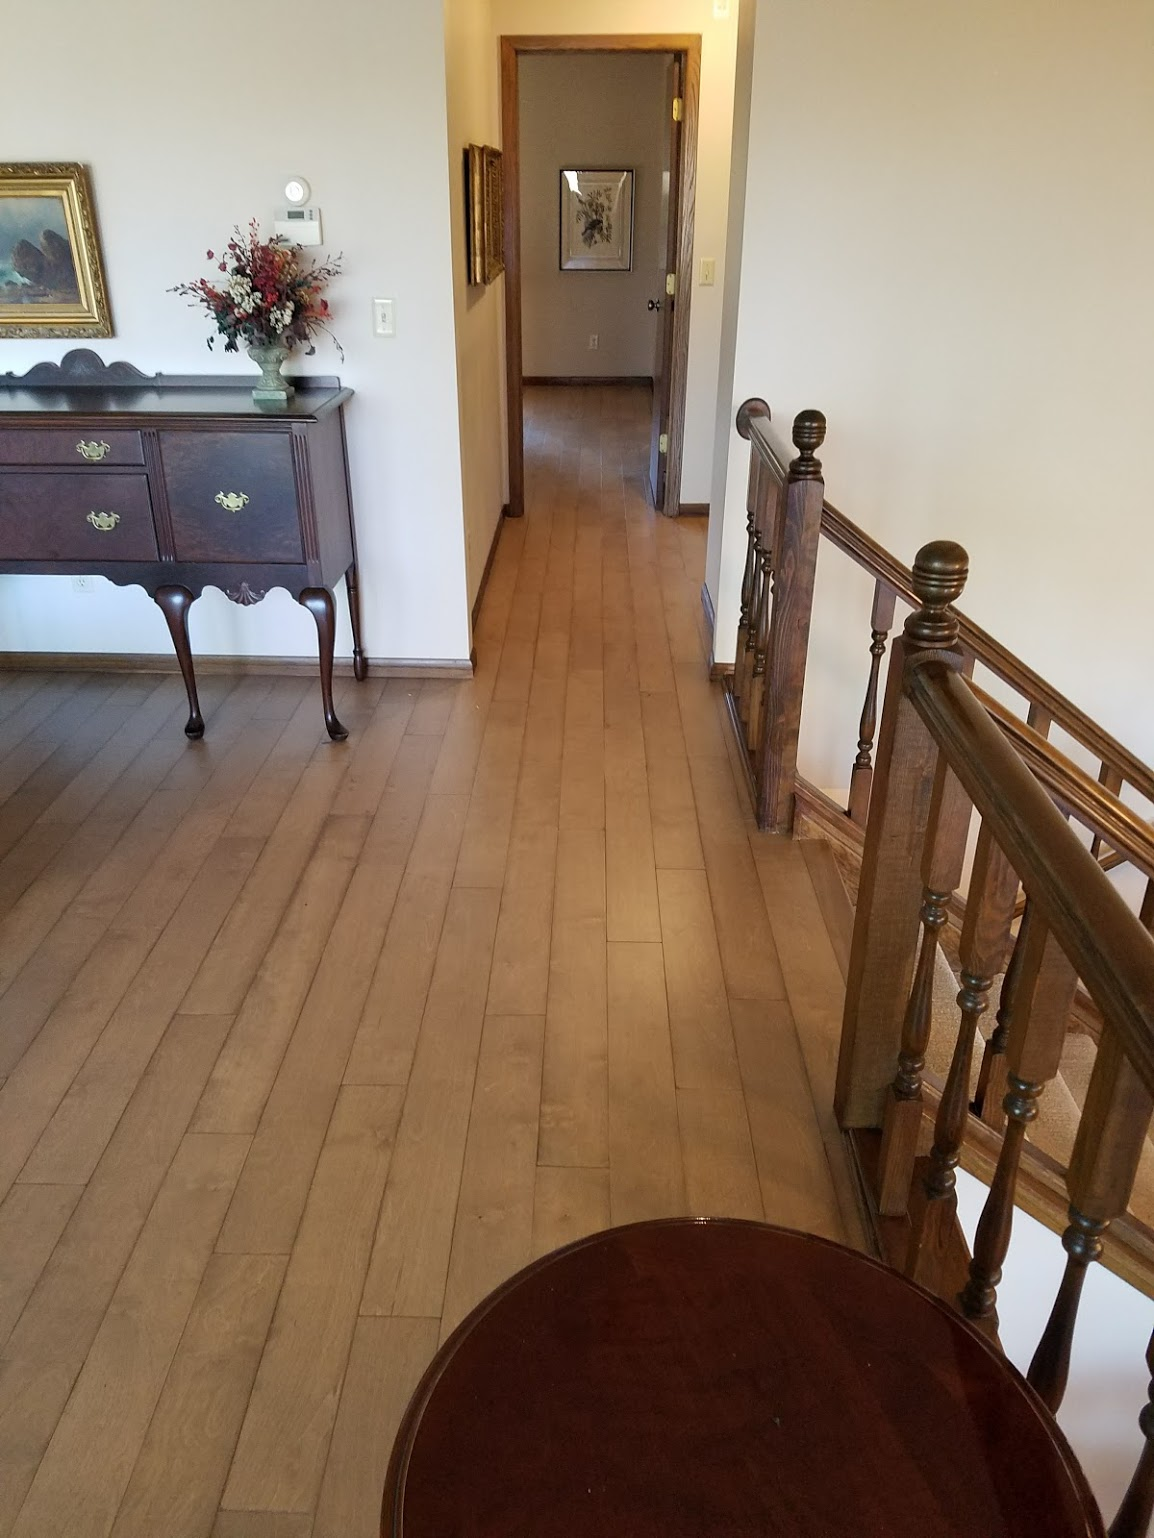 wood floor in hallway